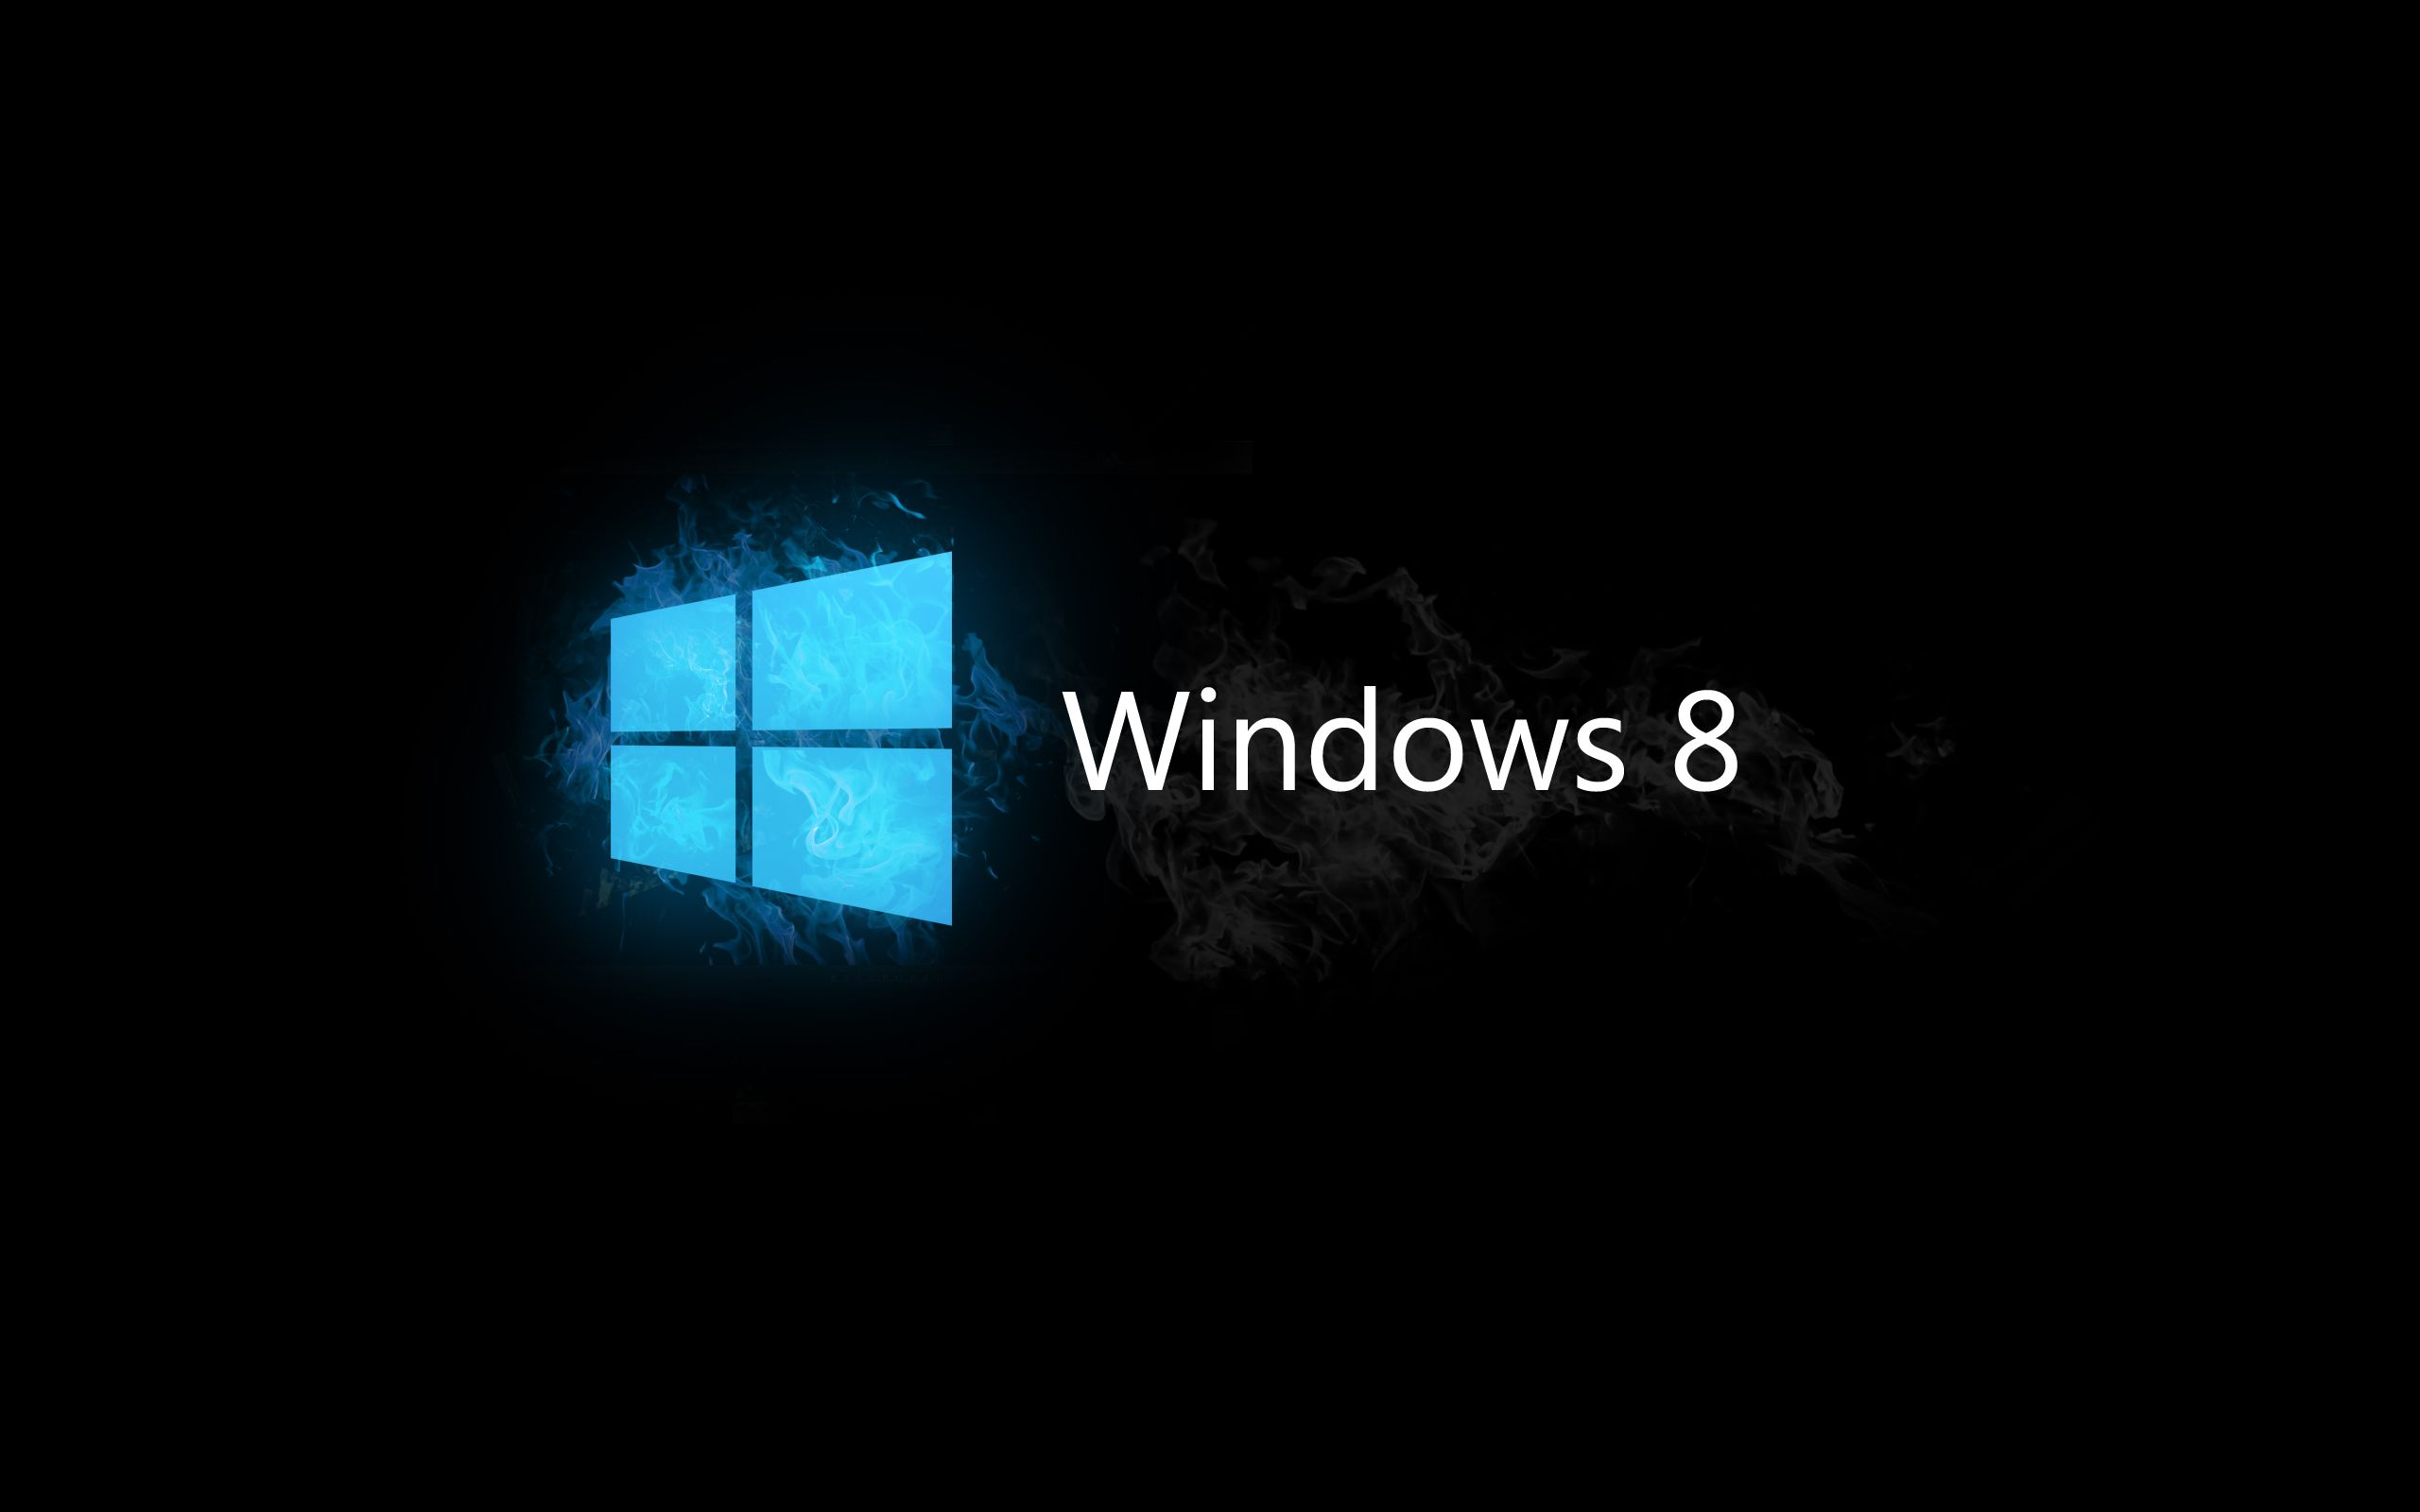 zs 43 windows 8 wallpapers windows 8 full hd pictures and wallpapers